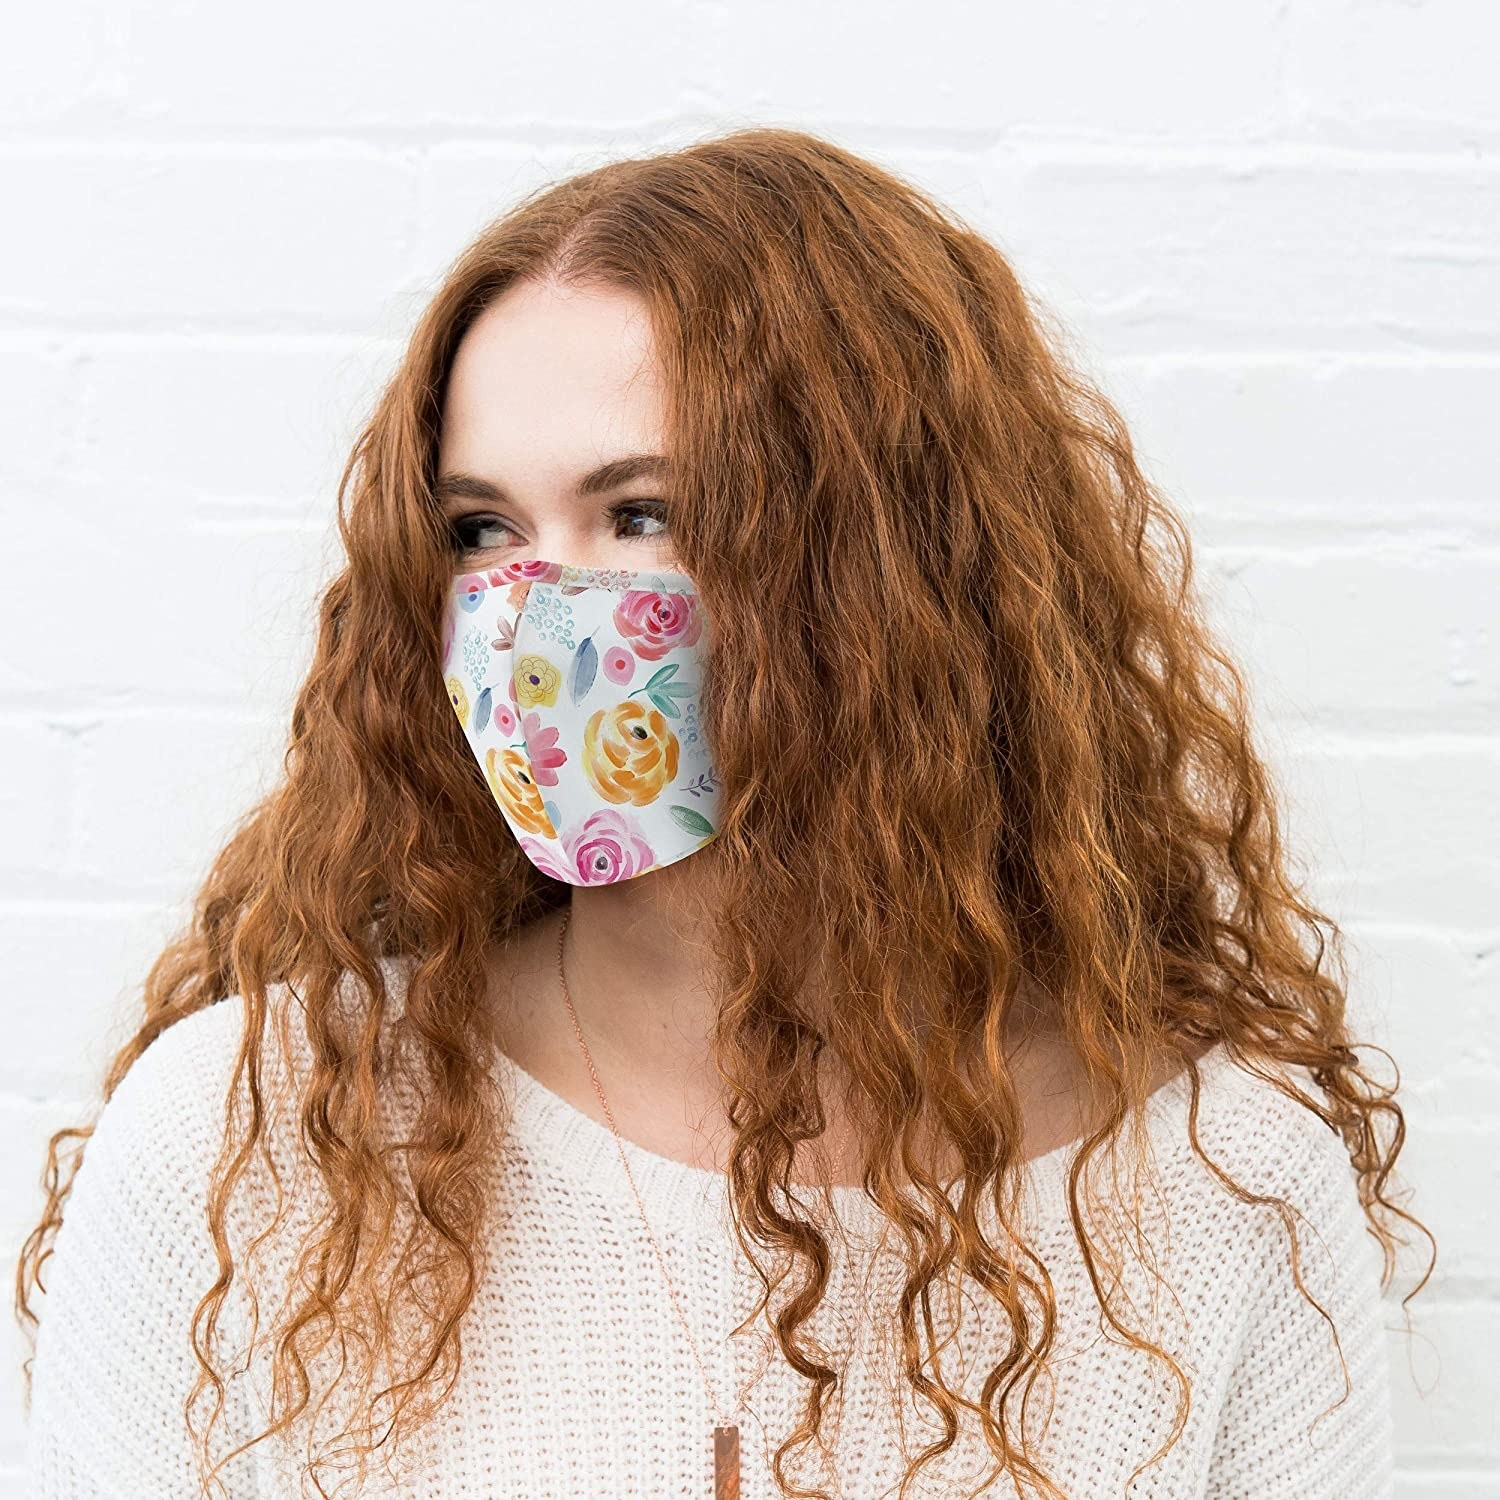 A person wears a floral mask